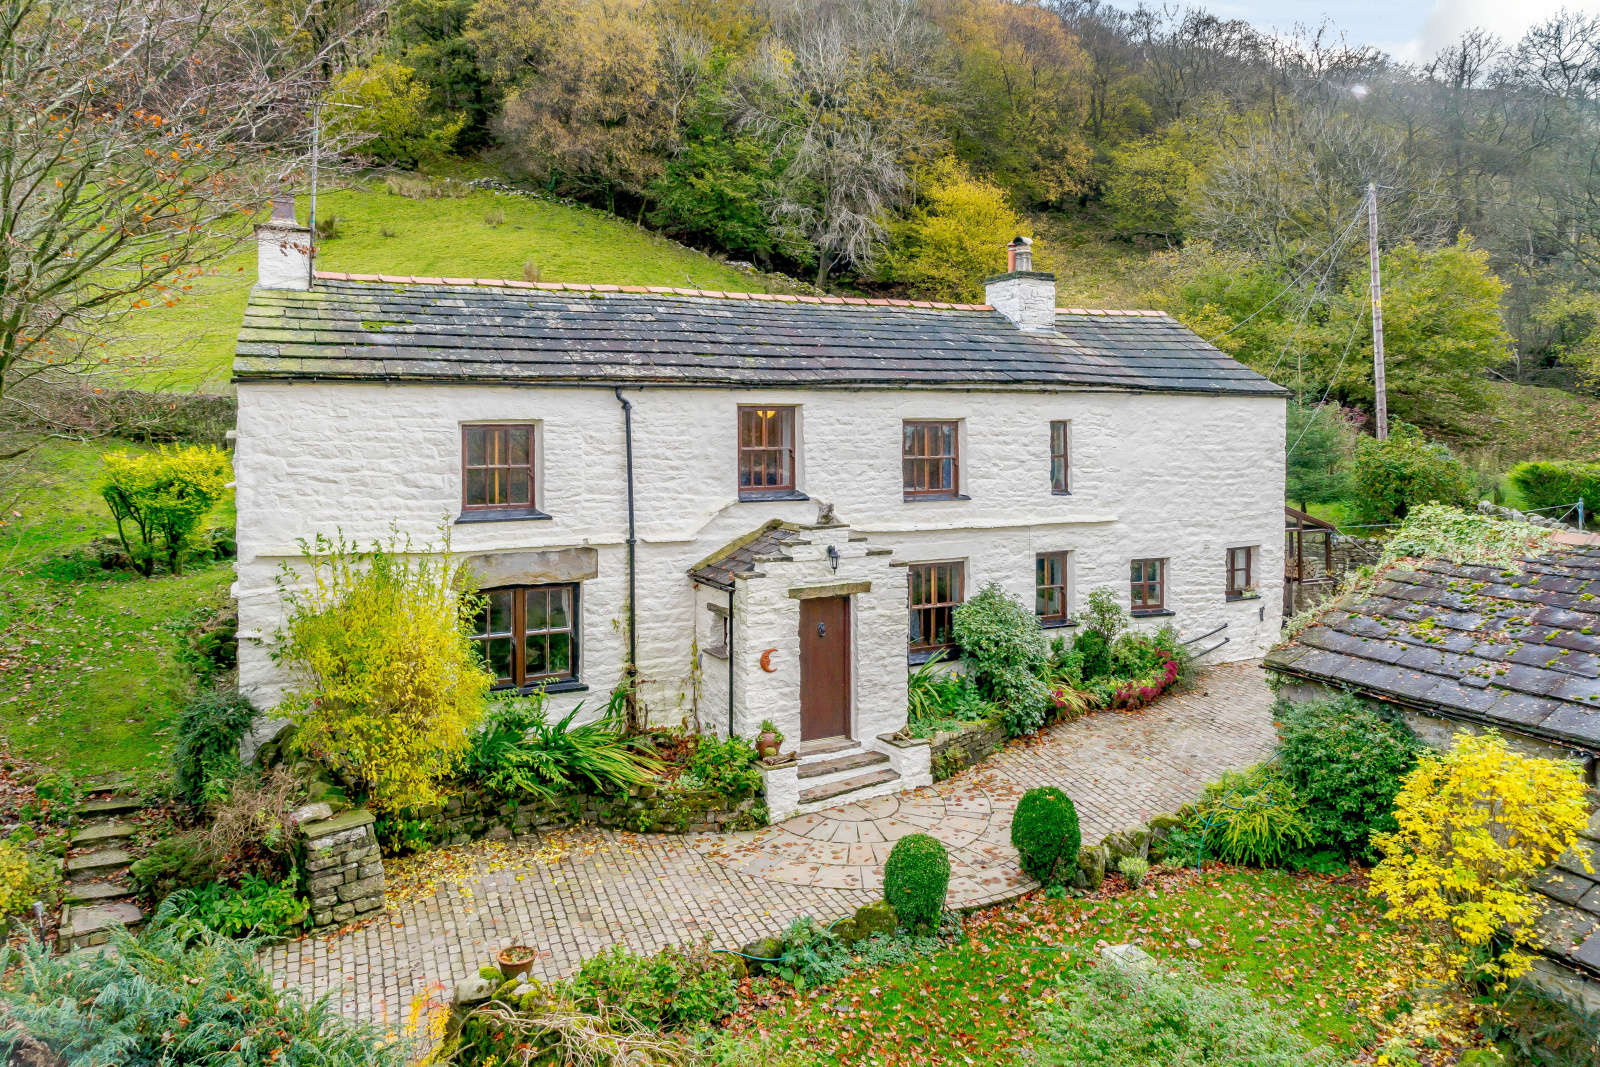 Grade II Listed 18th century historical farmhouse and longhouse in UK countryside